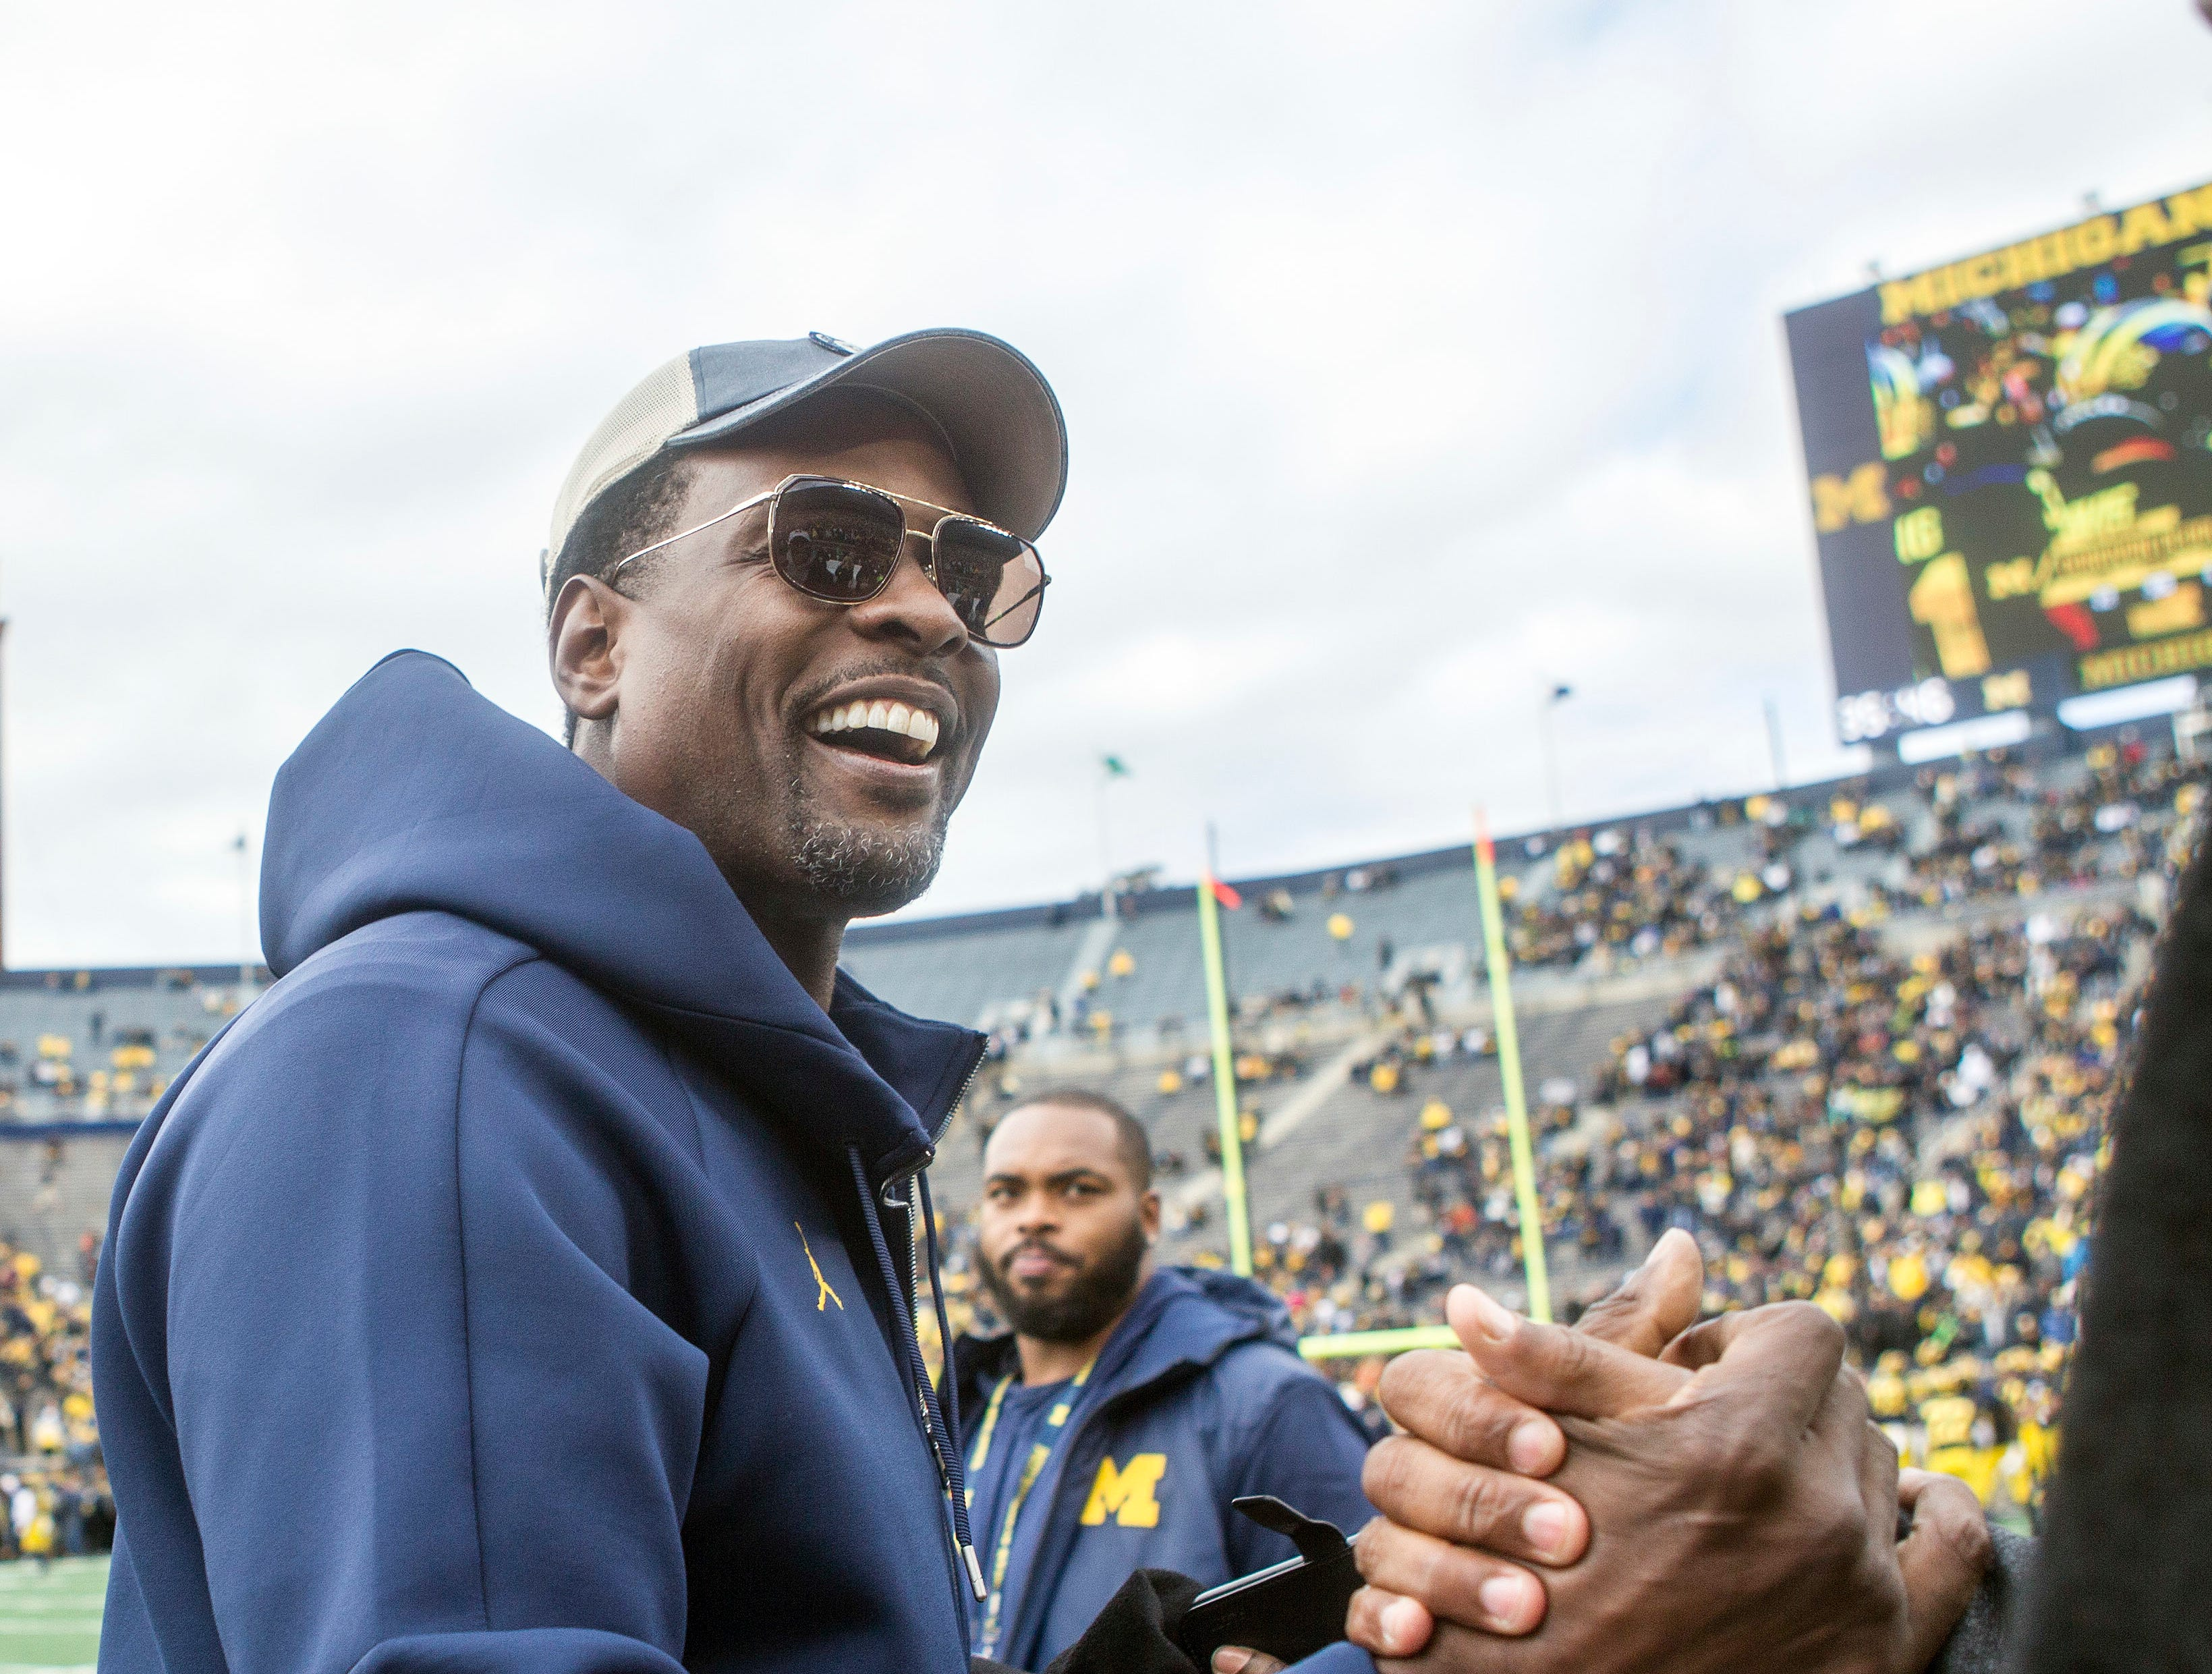 Former Michigan basketball player Chris Webber, right, greet fans on the Michigan Stadium field prior to an NCAA college football game against Penn State in Ann Arbor, Mich., Saturday, Nov. 3, 2018. Michigan is making Webber an honorary captain for the game. (AP Photo/Tony Ding)